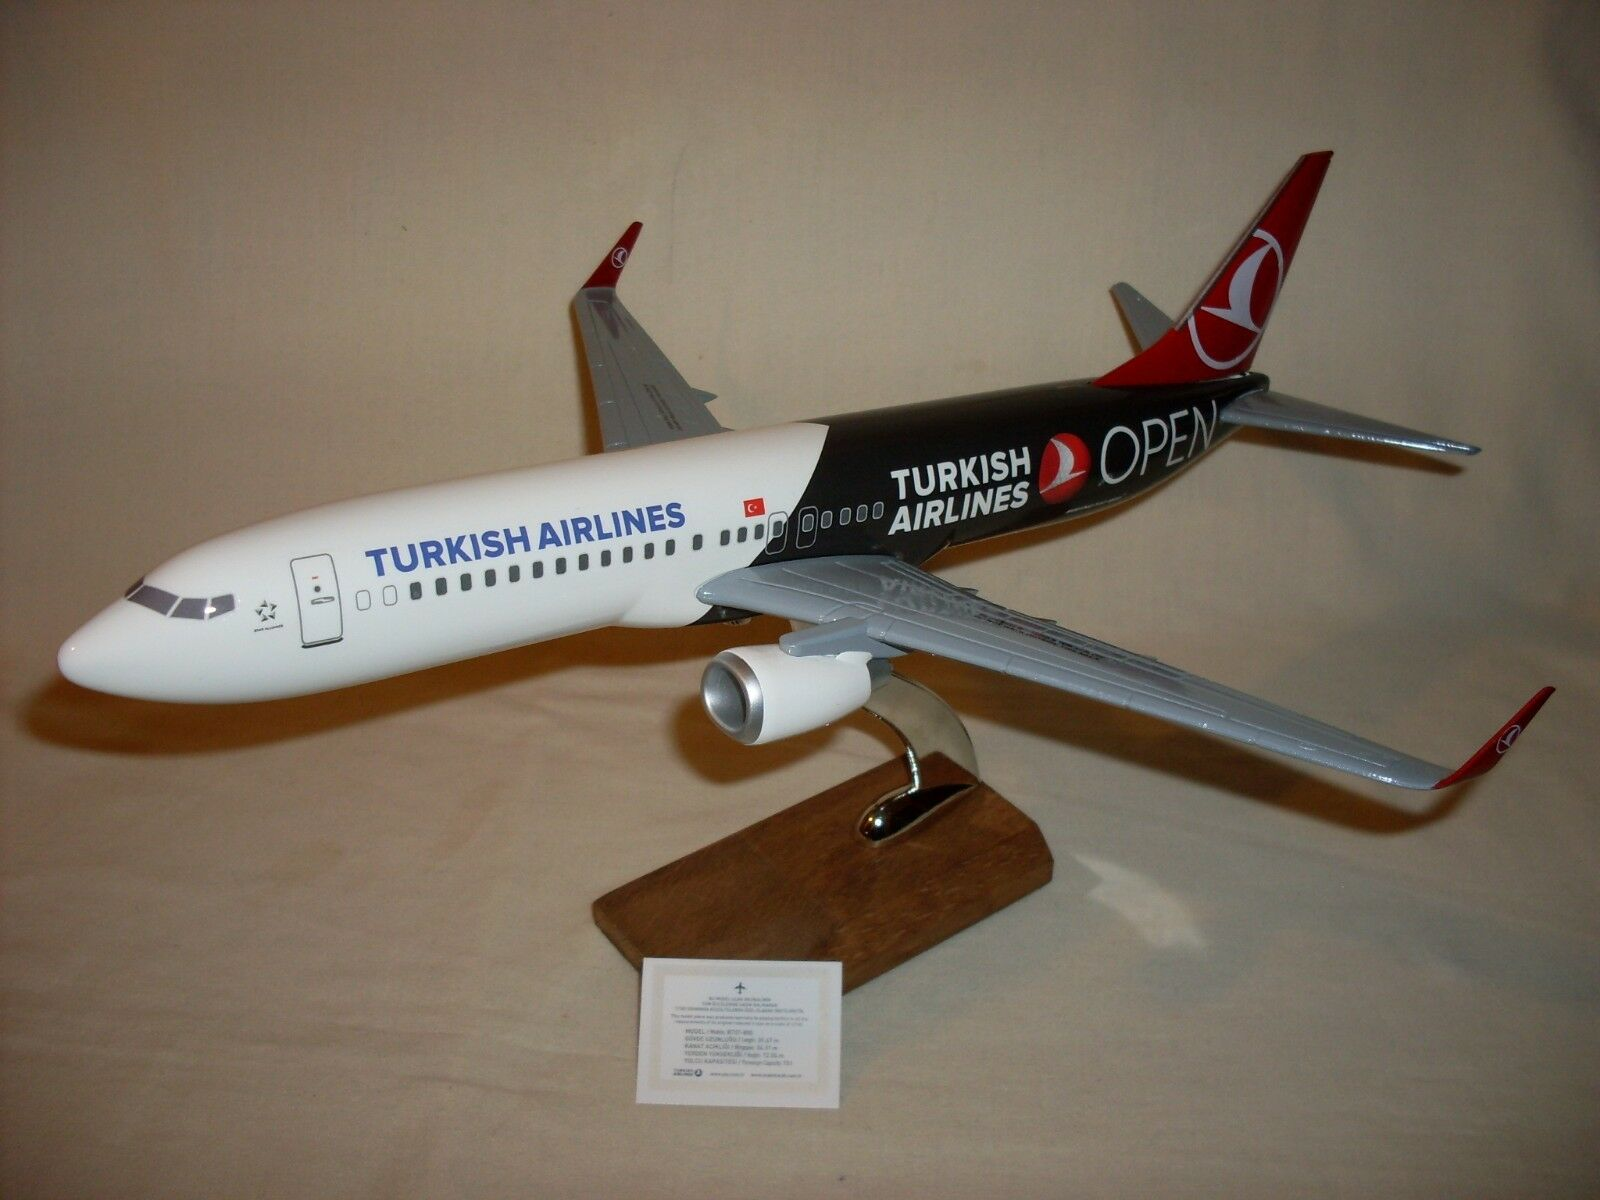 TURKISH AIRLINES  B737-800 PASSENGER PLANE (1 100 SCALE) NEW BOXED